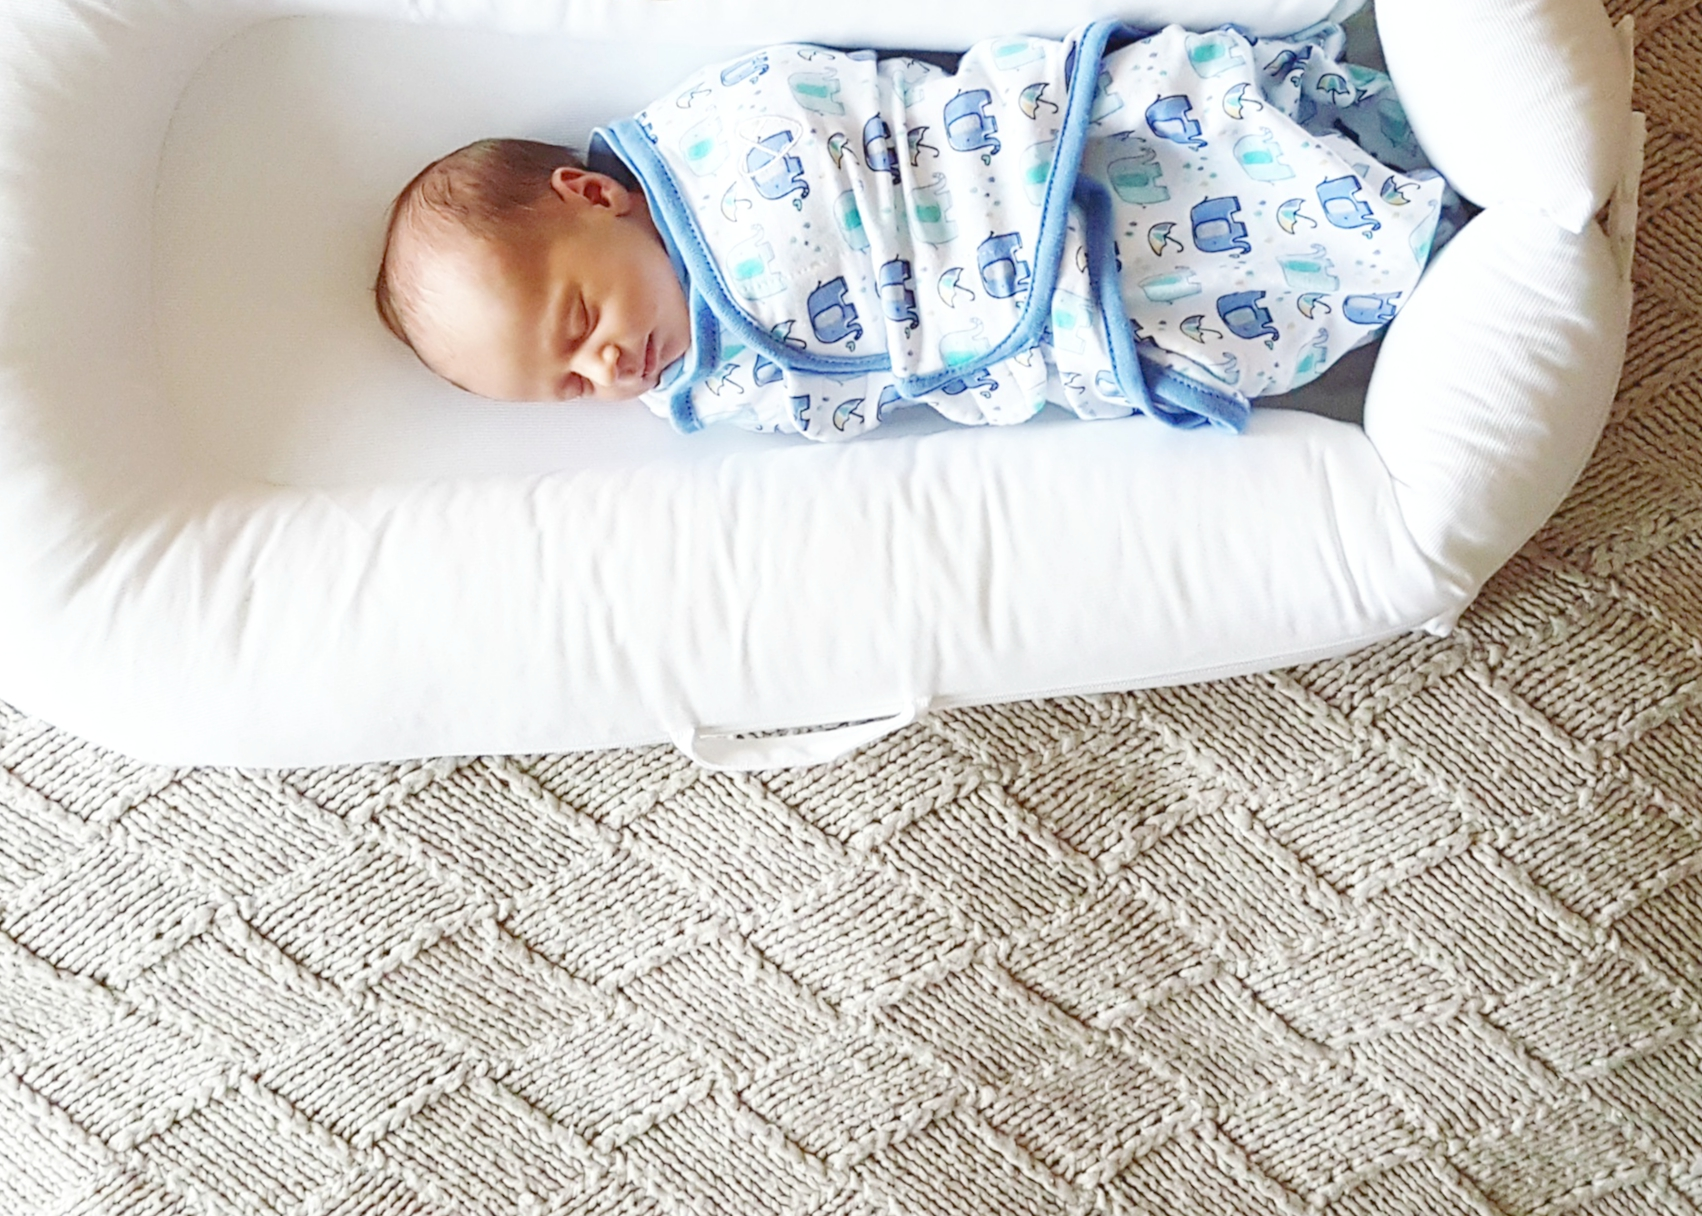 New 261 Baby Pillow Needed